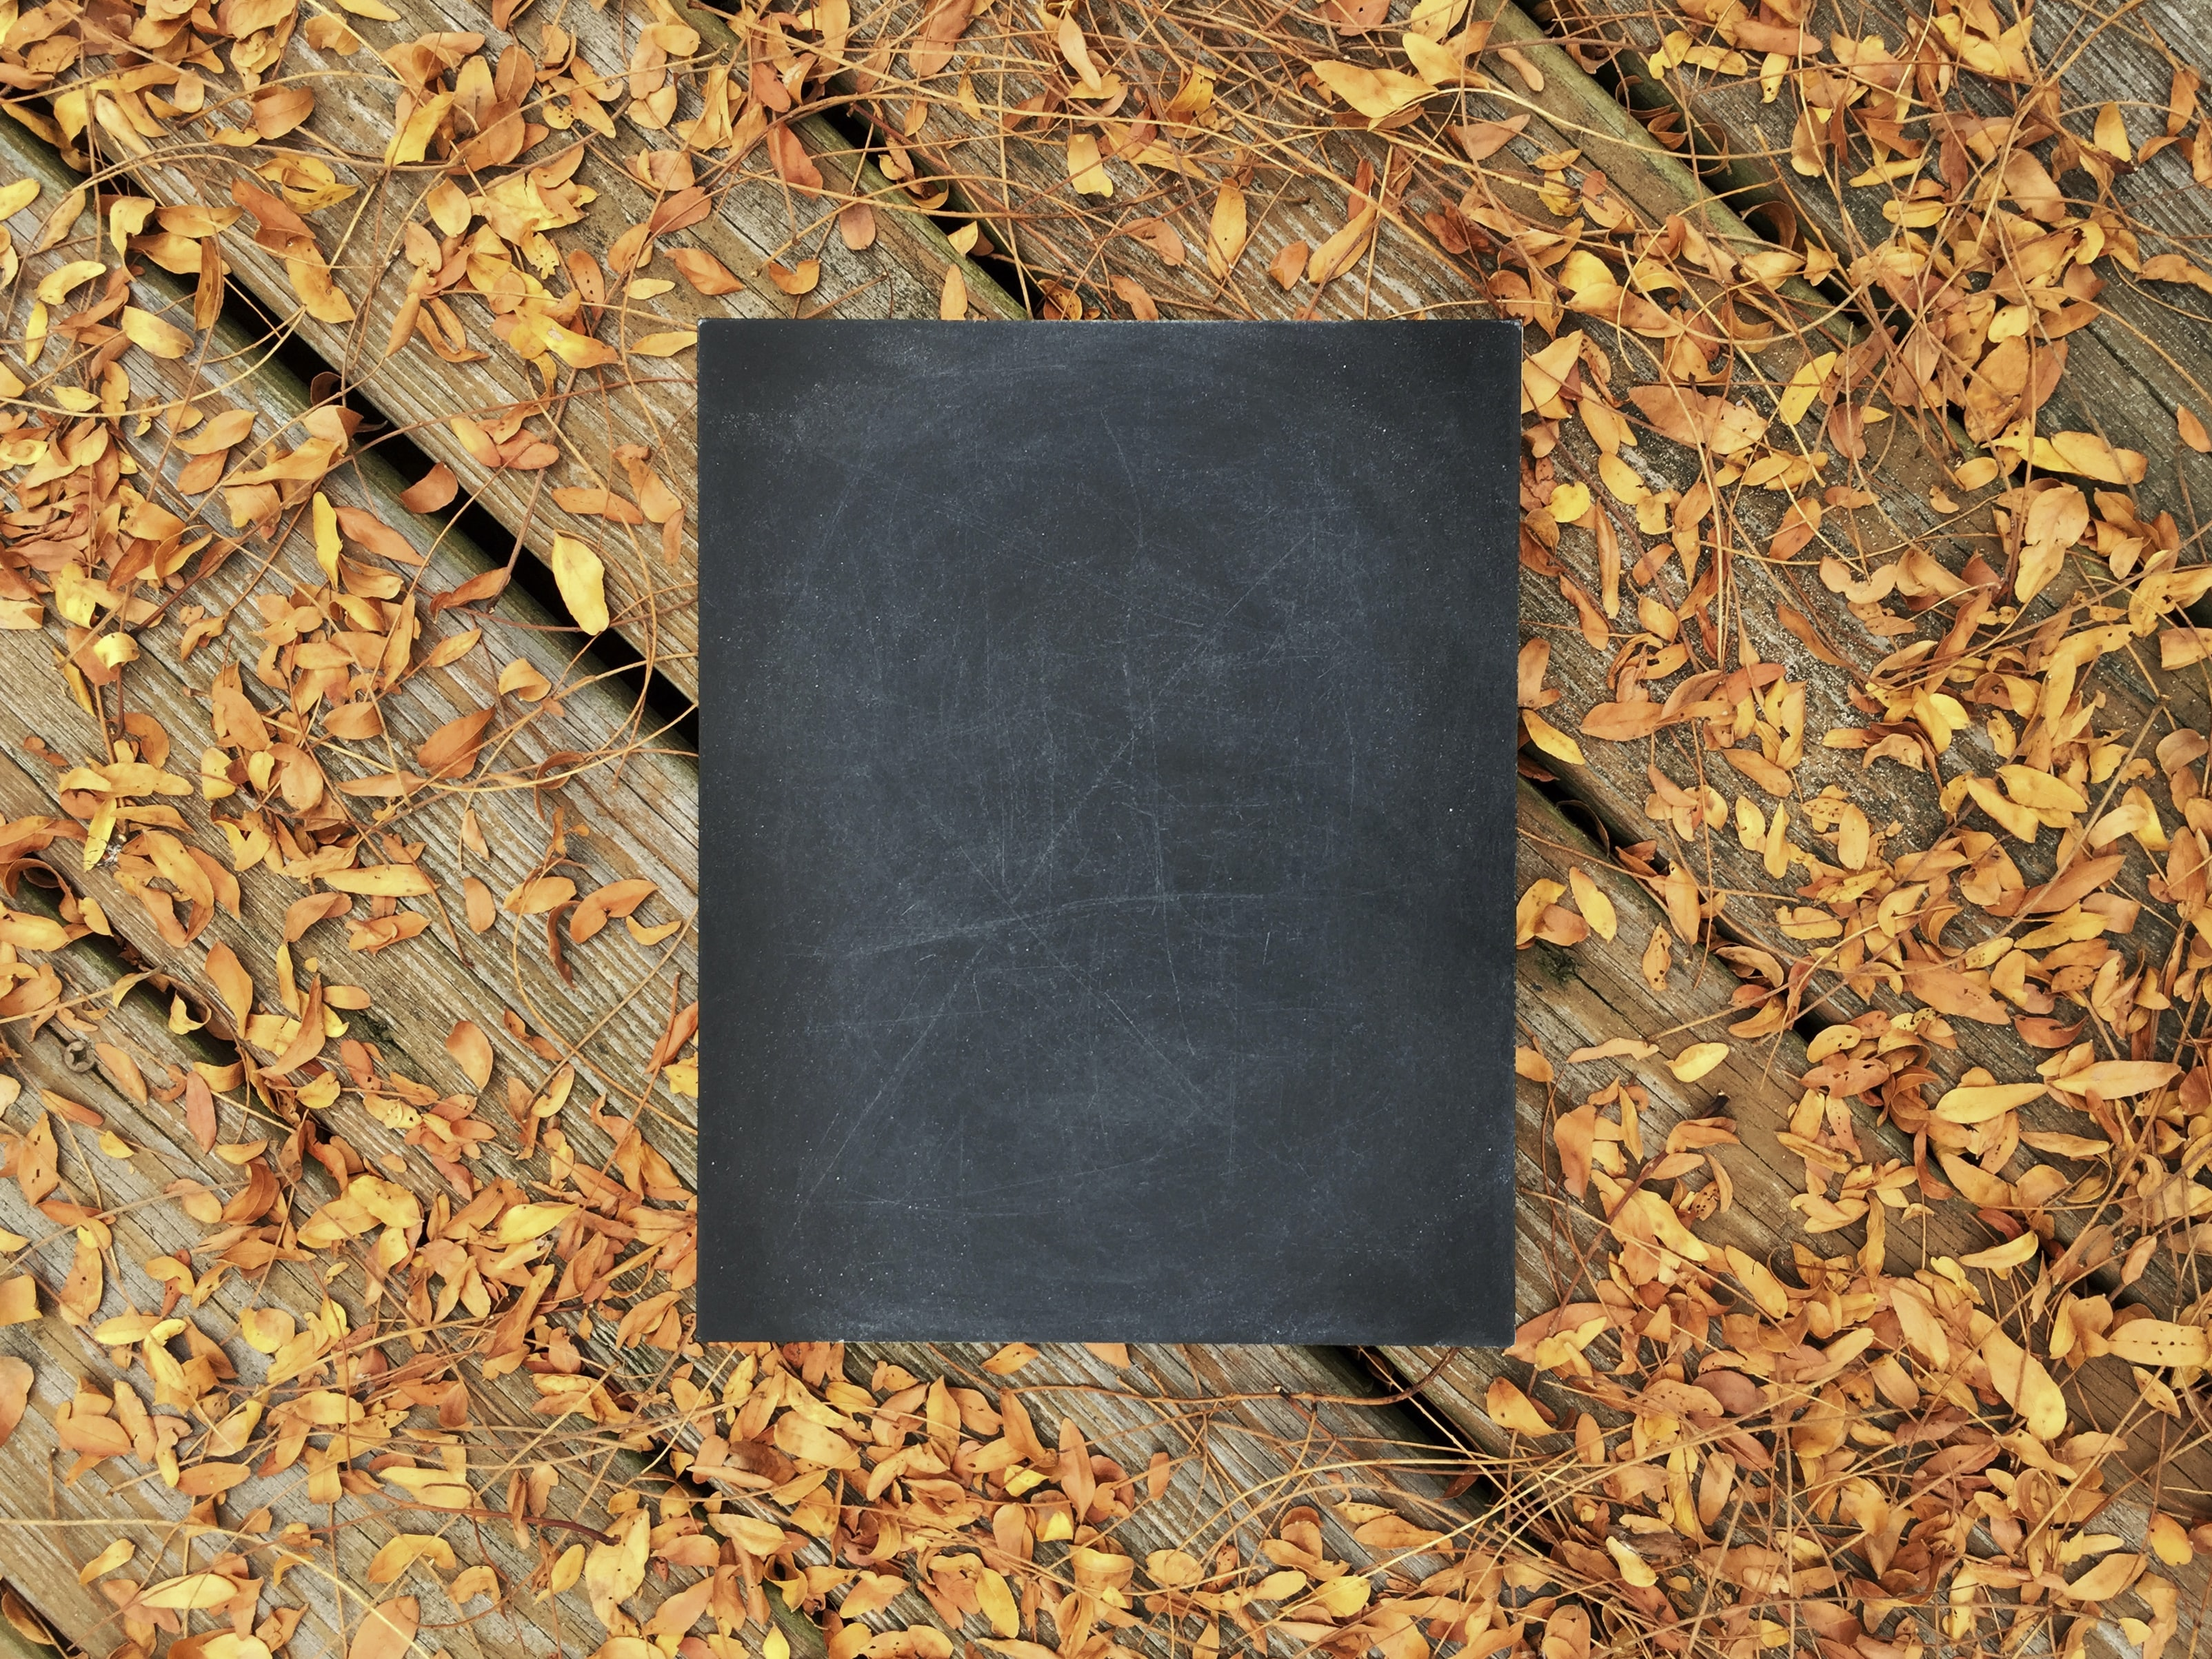 chalkboard on wooden surface with fallen leaves